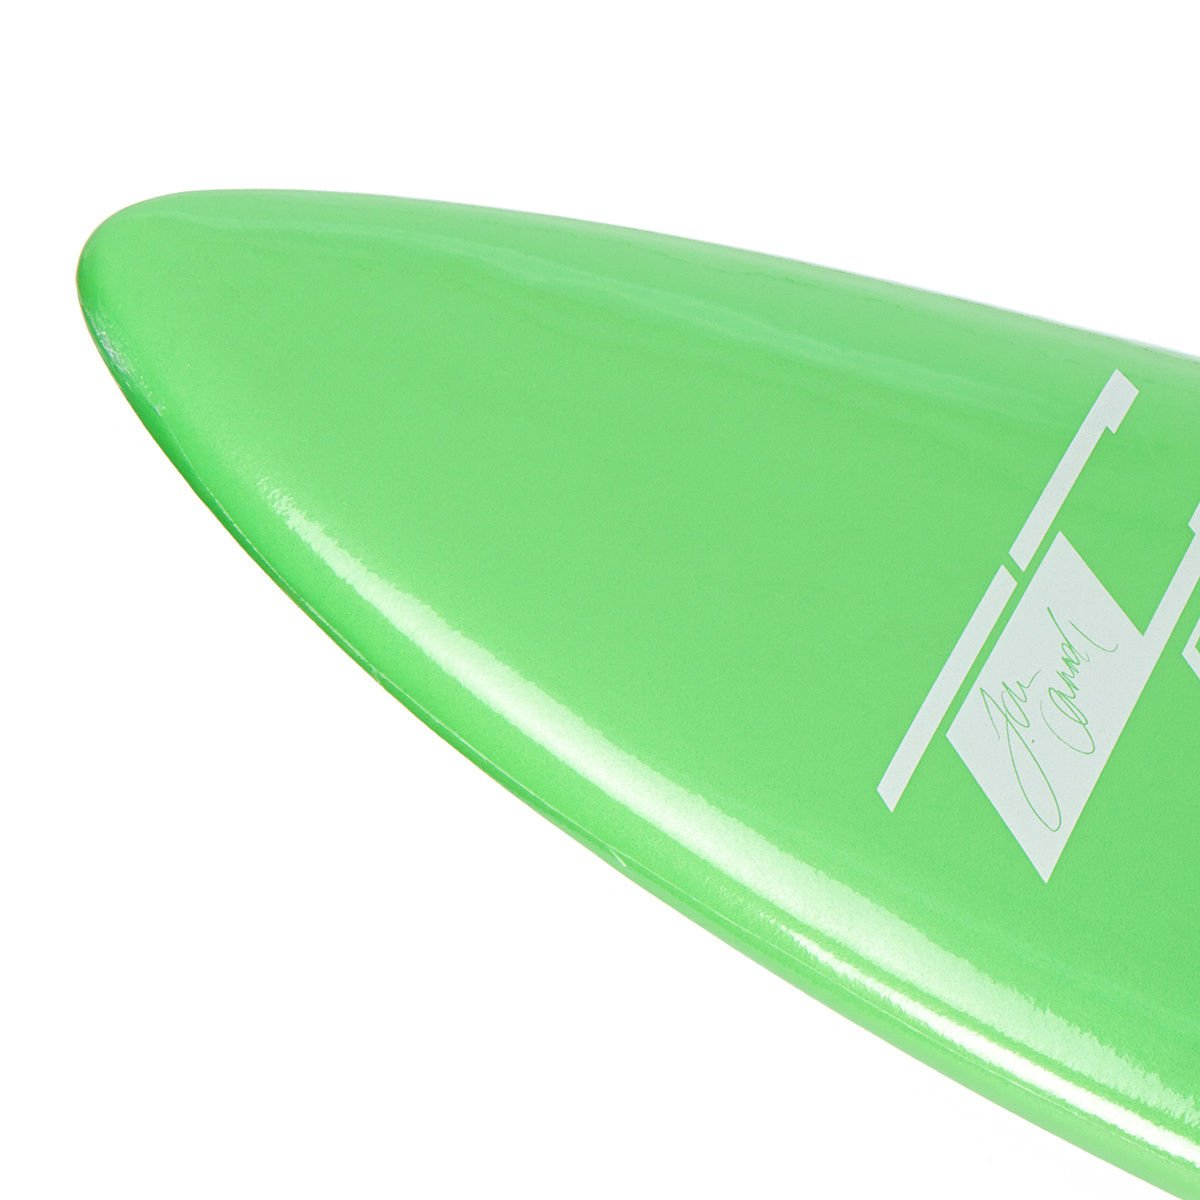 SoftTech TC PRO MODEL Lime Surfboard - 6 ft 0: Amazon.es: Deportes y aire libre